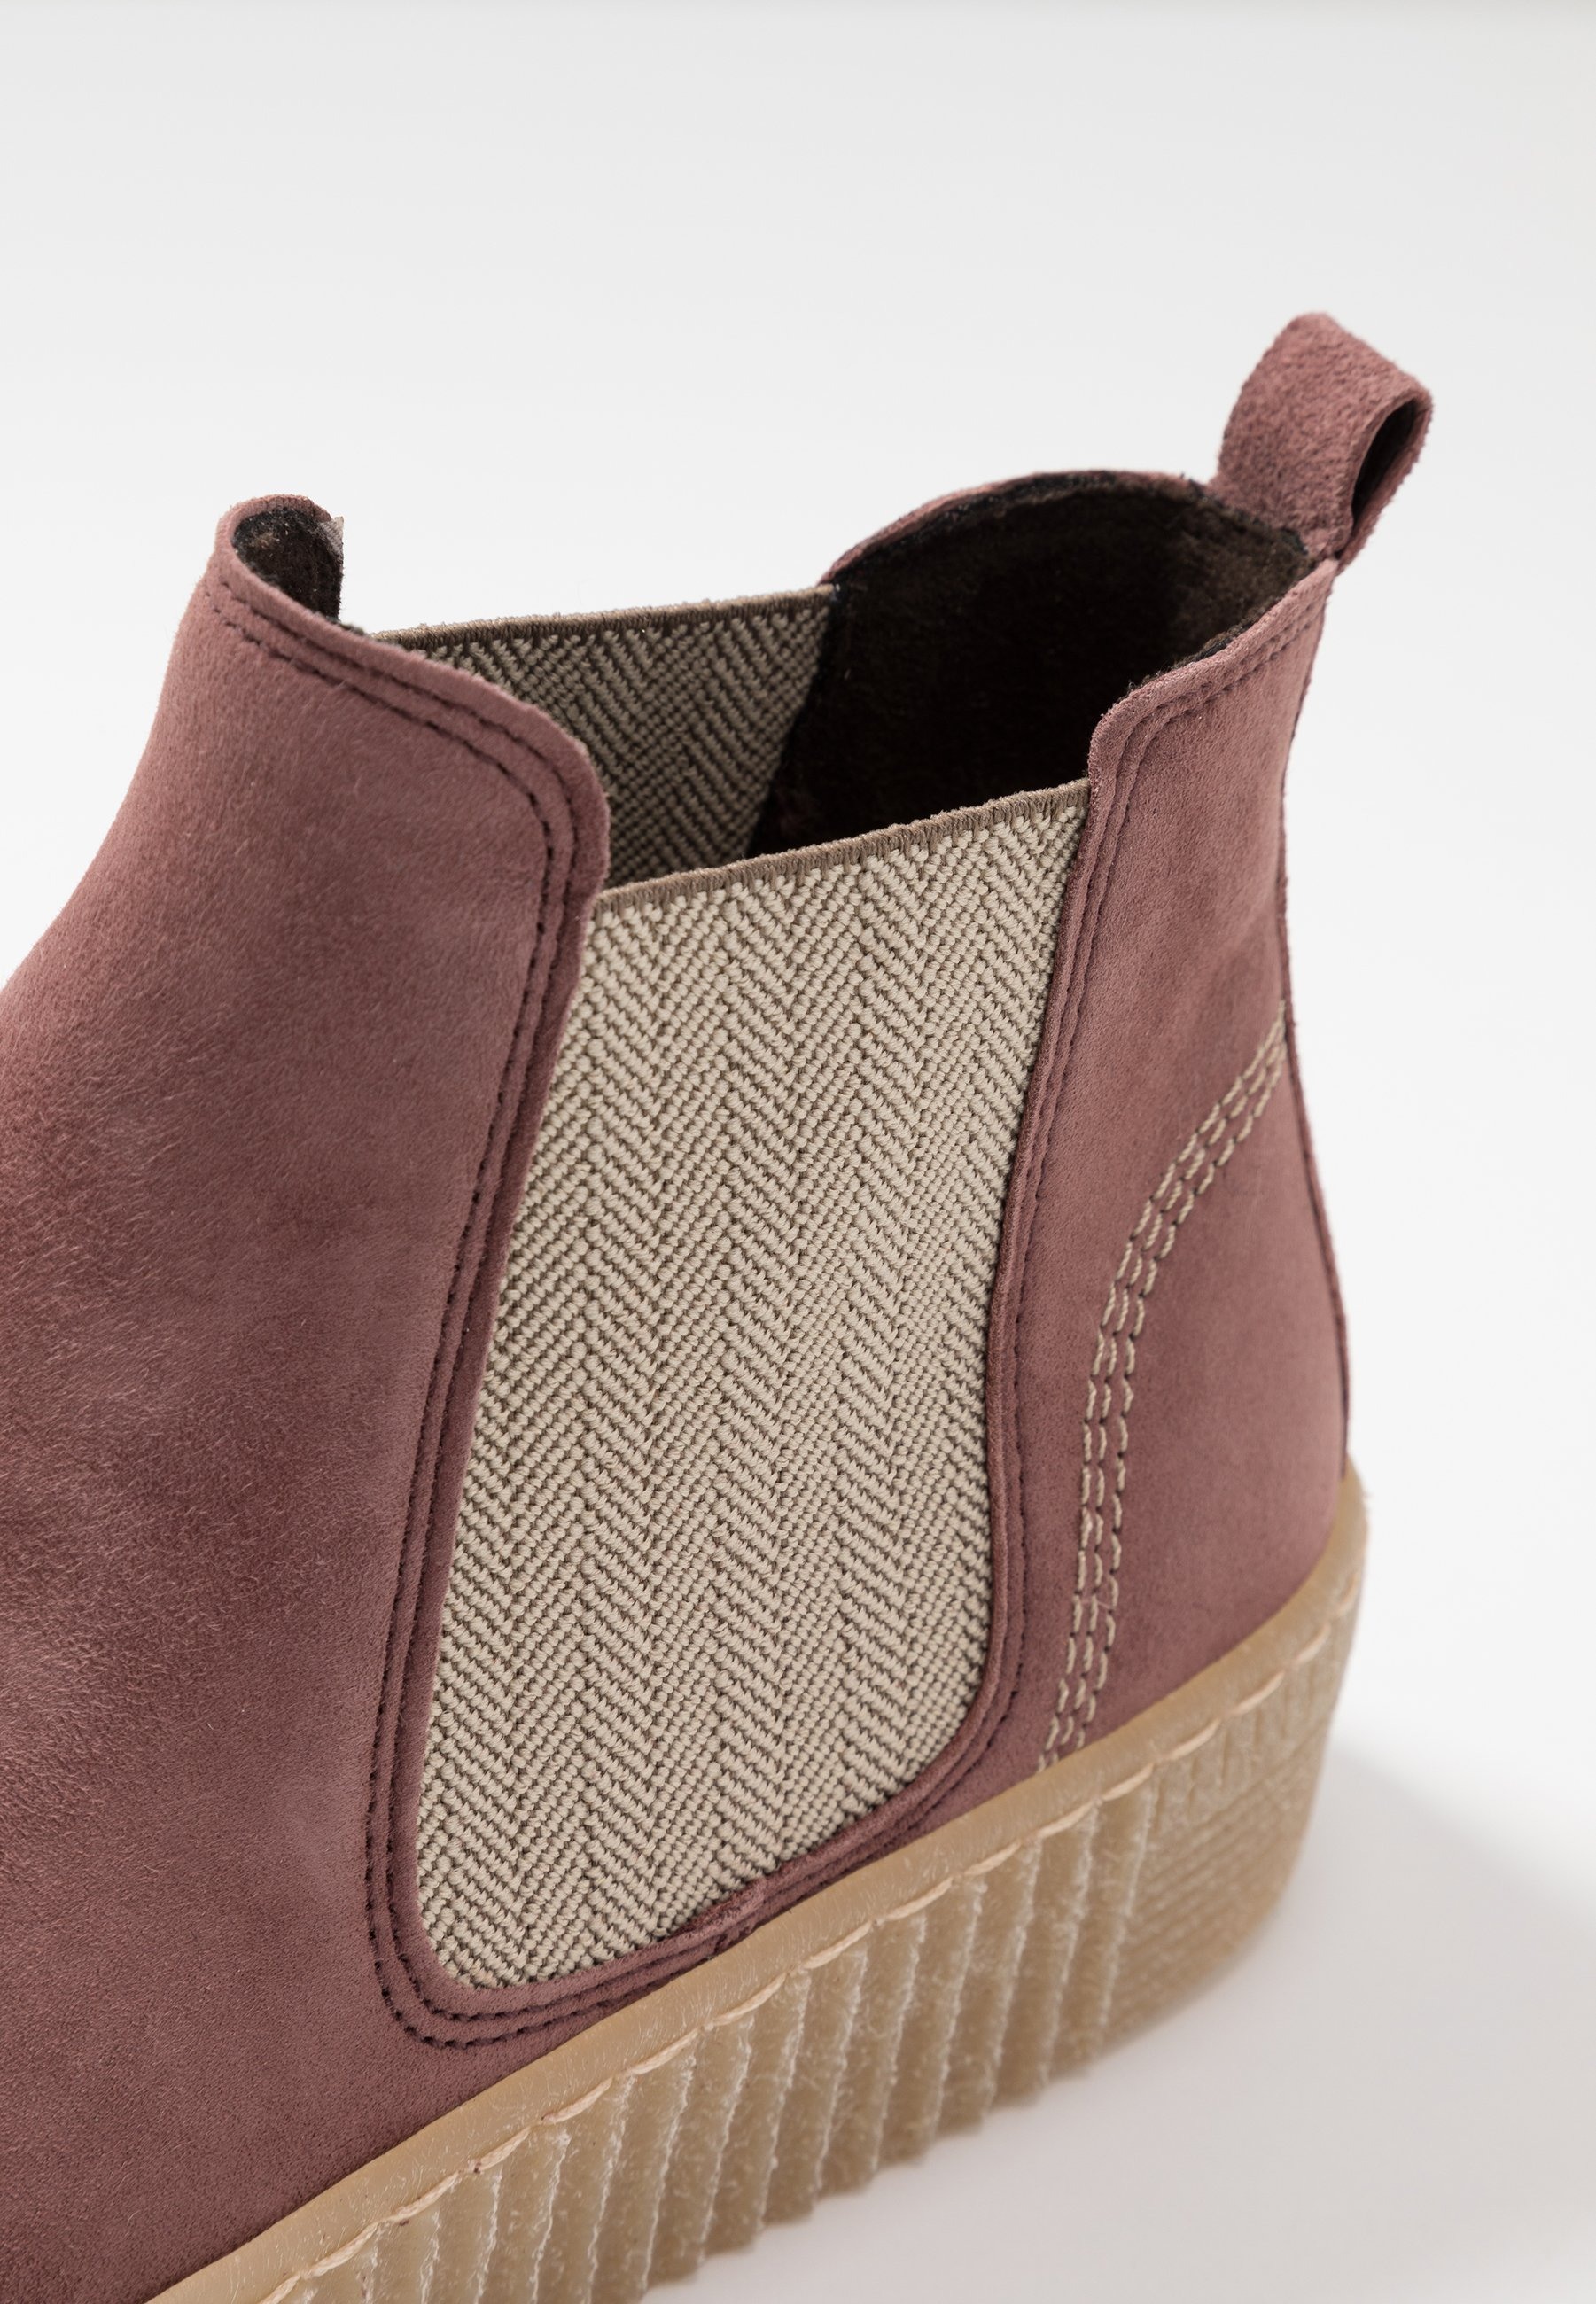 Gabor Ankle Boot pastell rose/rosa